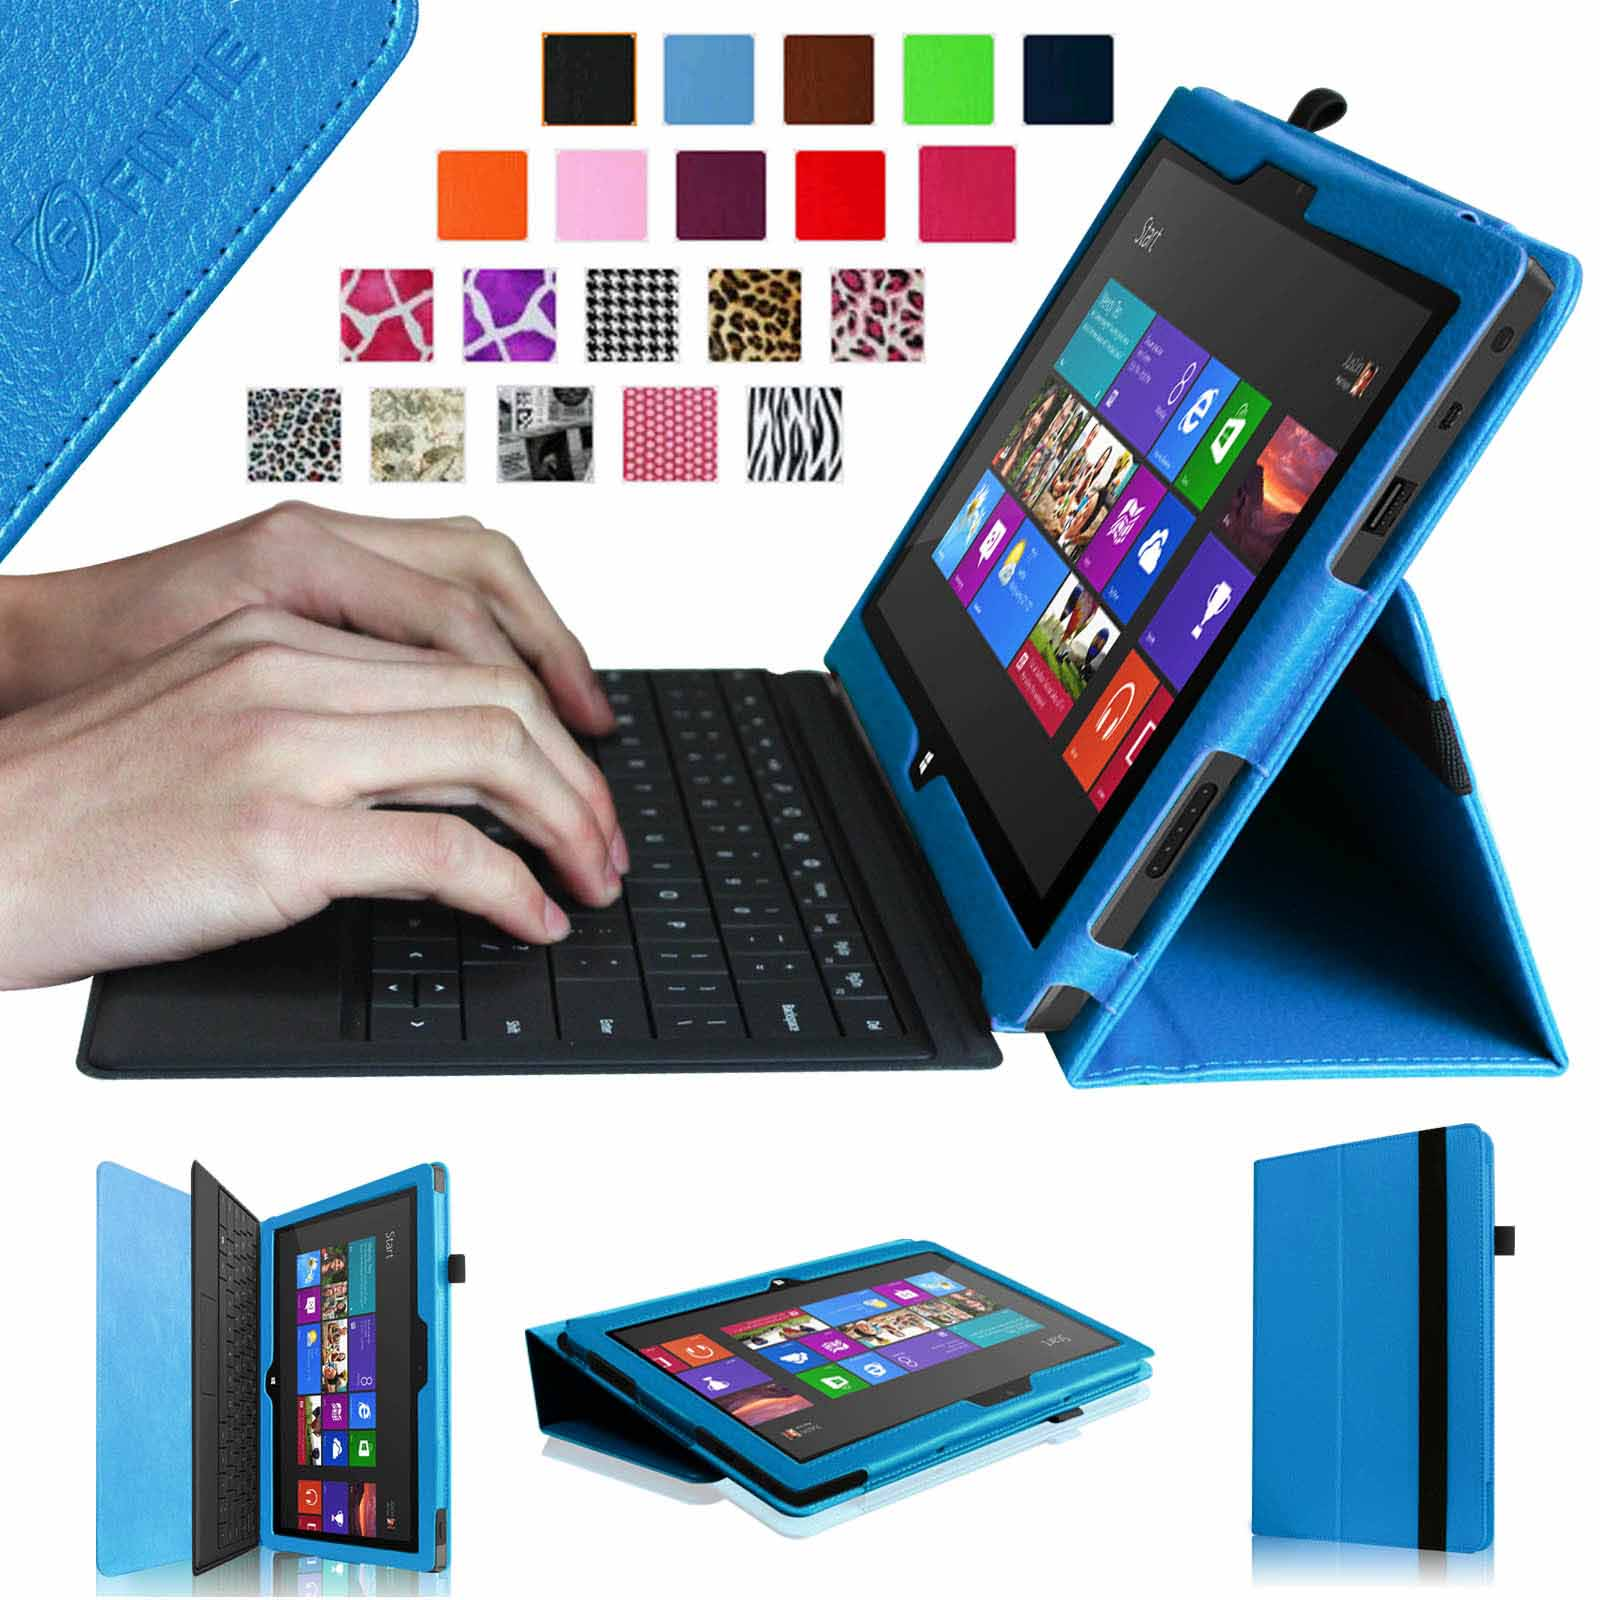 Fintie Microsoft Surface RT / Surface 2 10.6 inch Tablet Folio Case - Slim Fit PU Leather Stand Cover, Blue